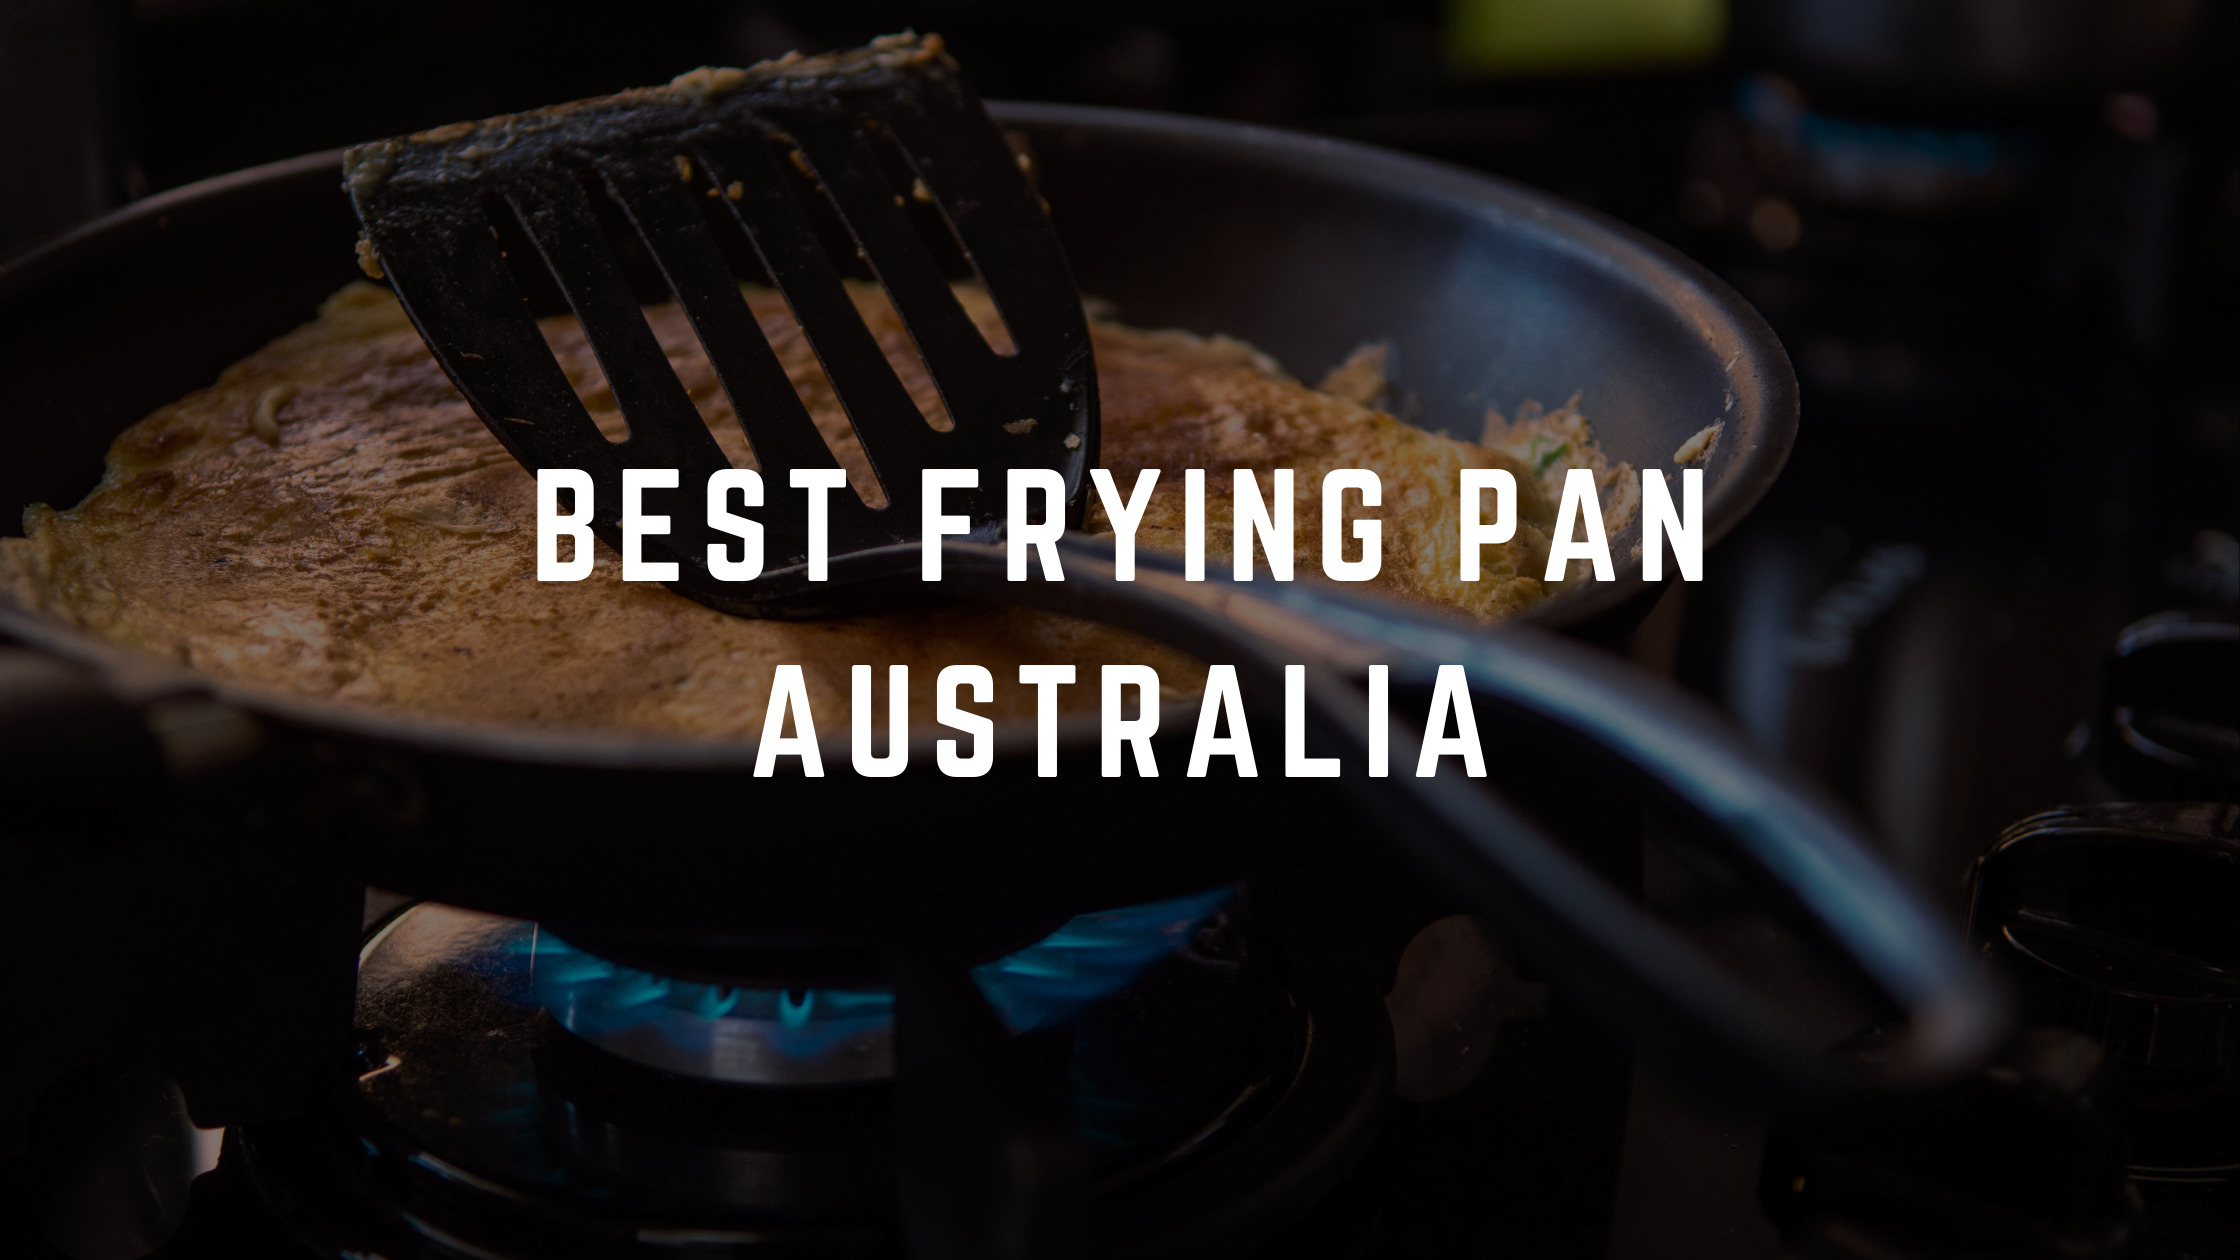 best frying pan australia